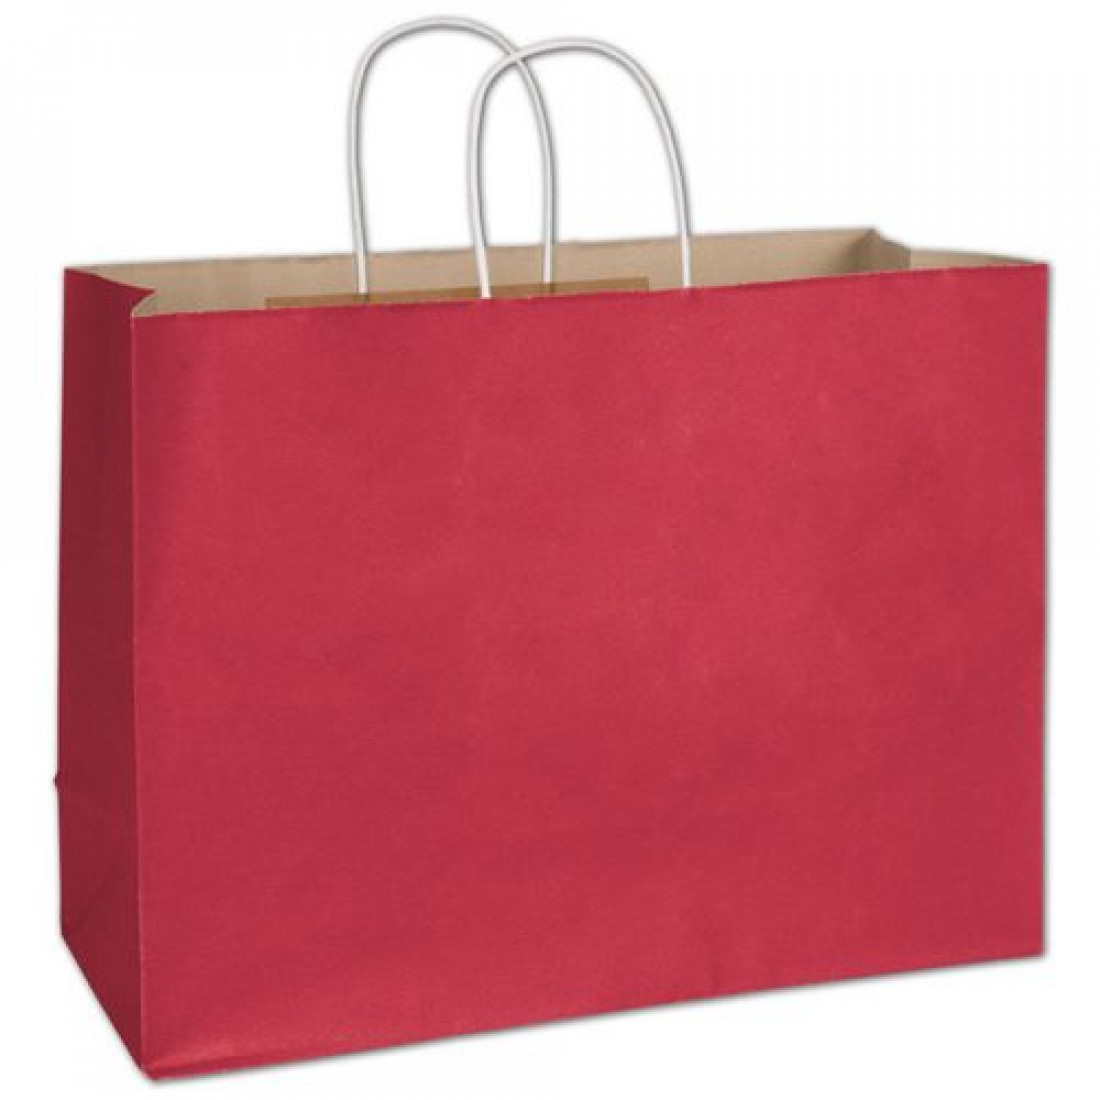 Crimson Vogue Shopper